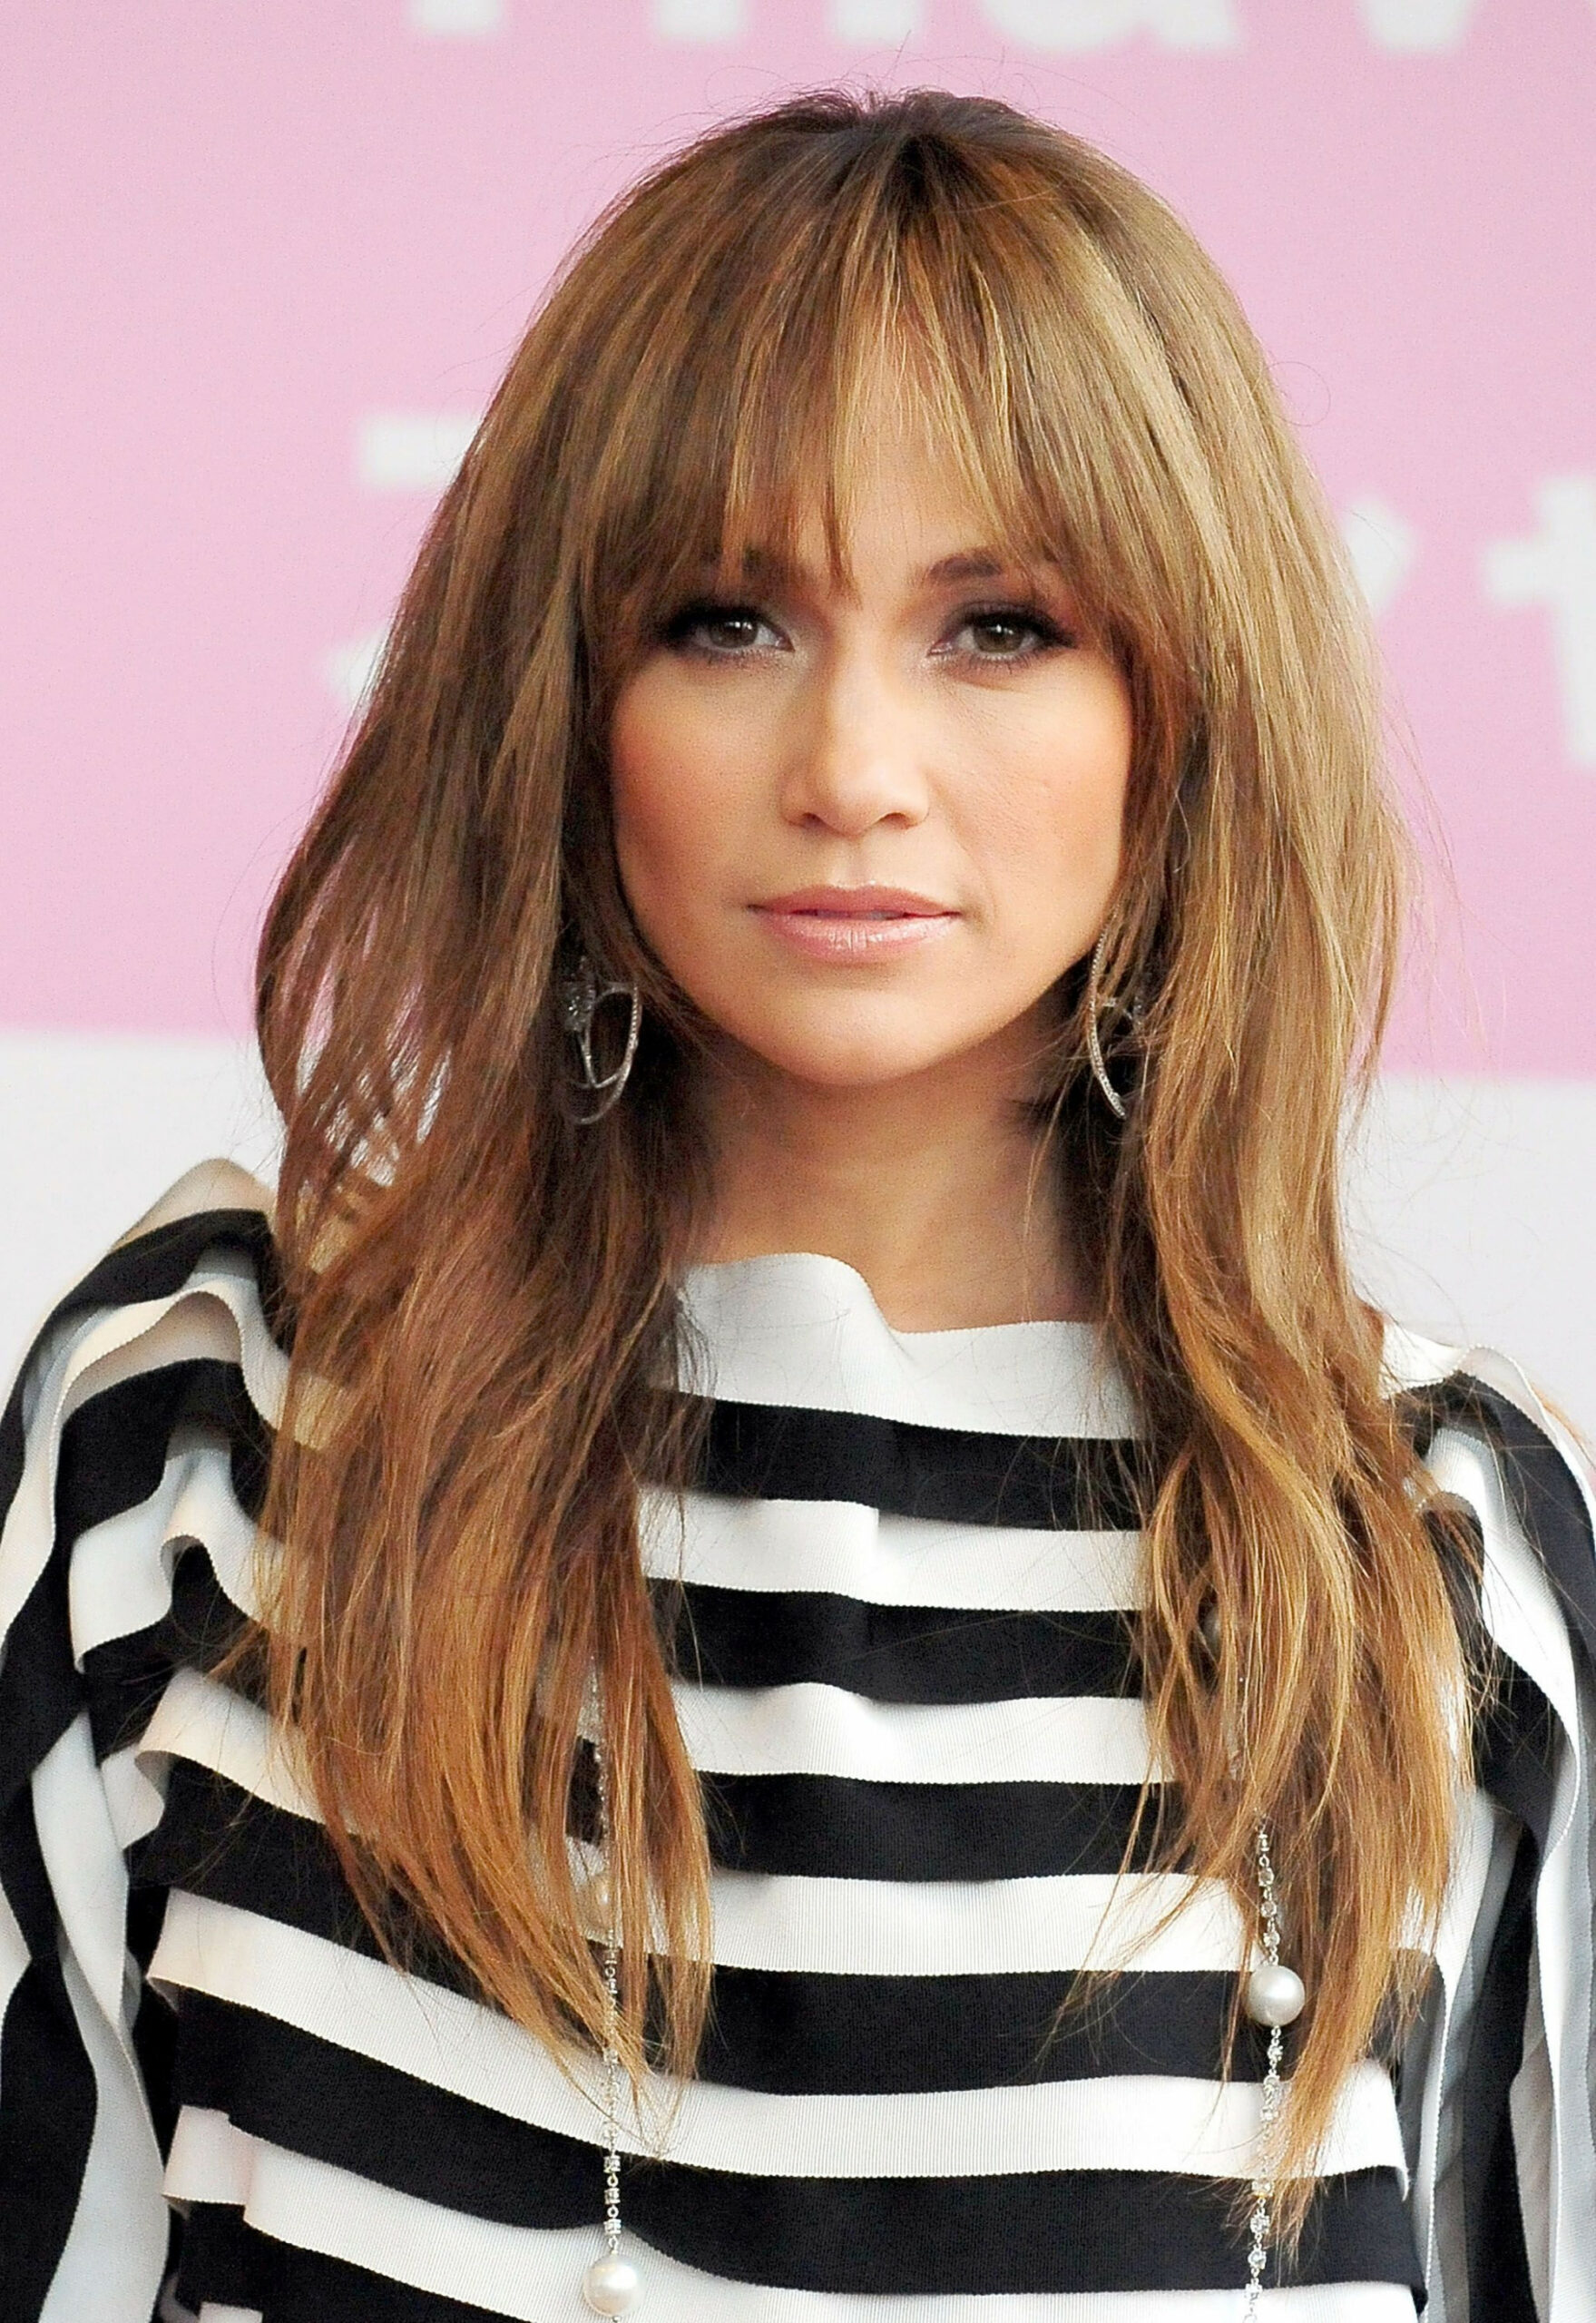 12 Best Hairstyles With Bangs - Photos of Celebrity Haircuts With